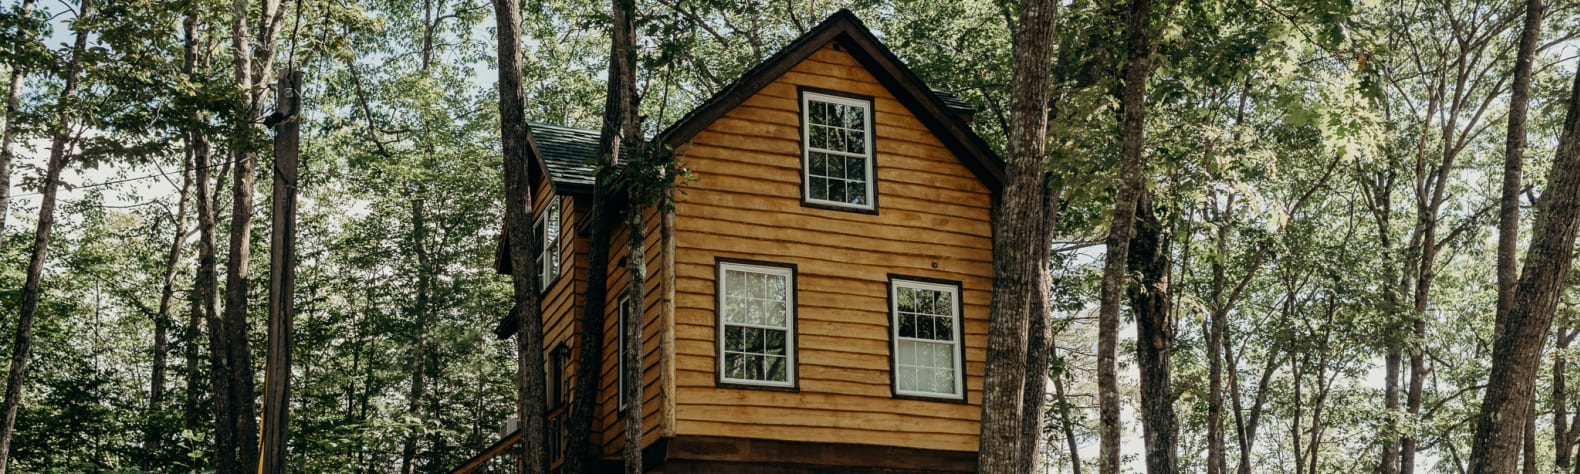 Maine Treehouse Rentals Camping